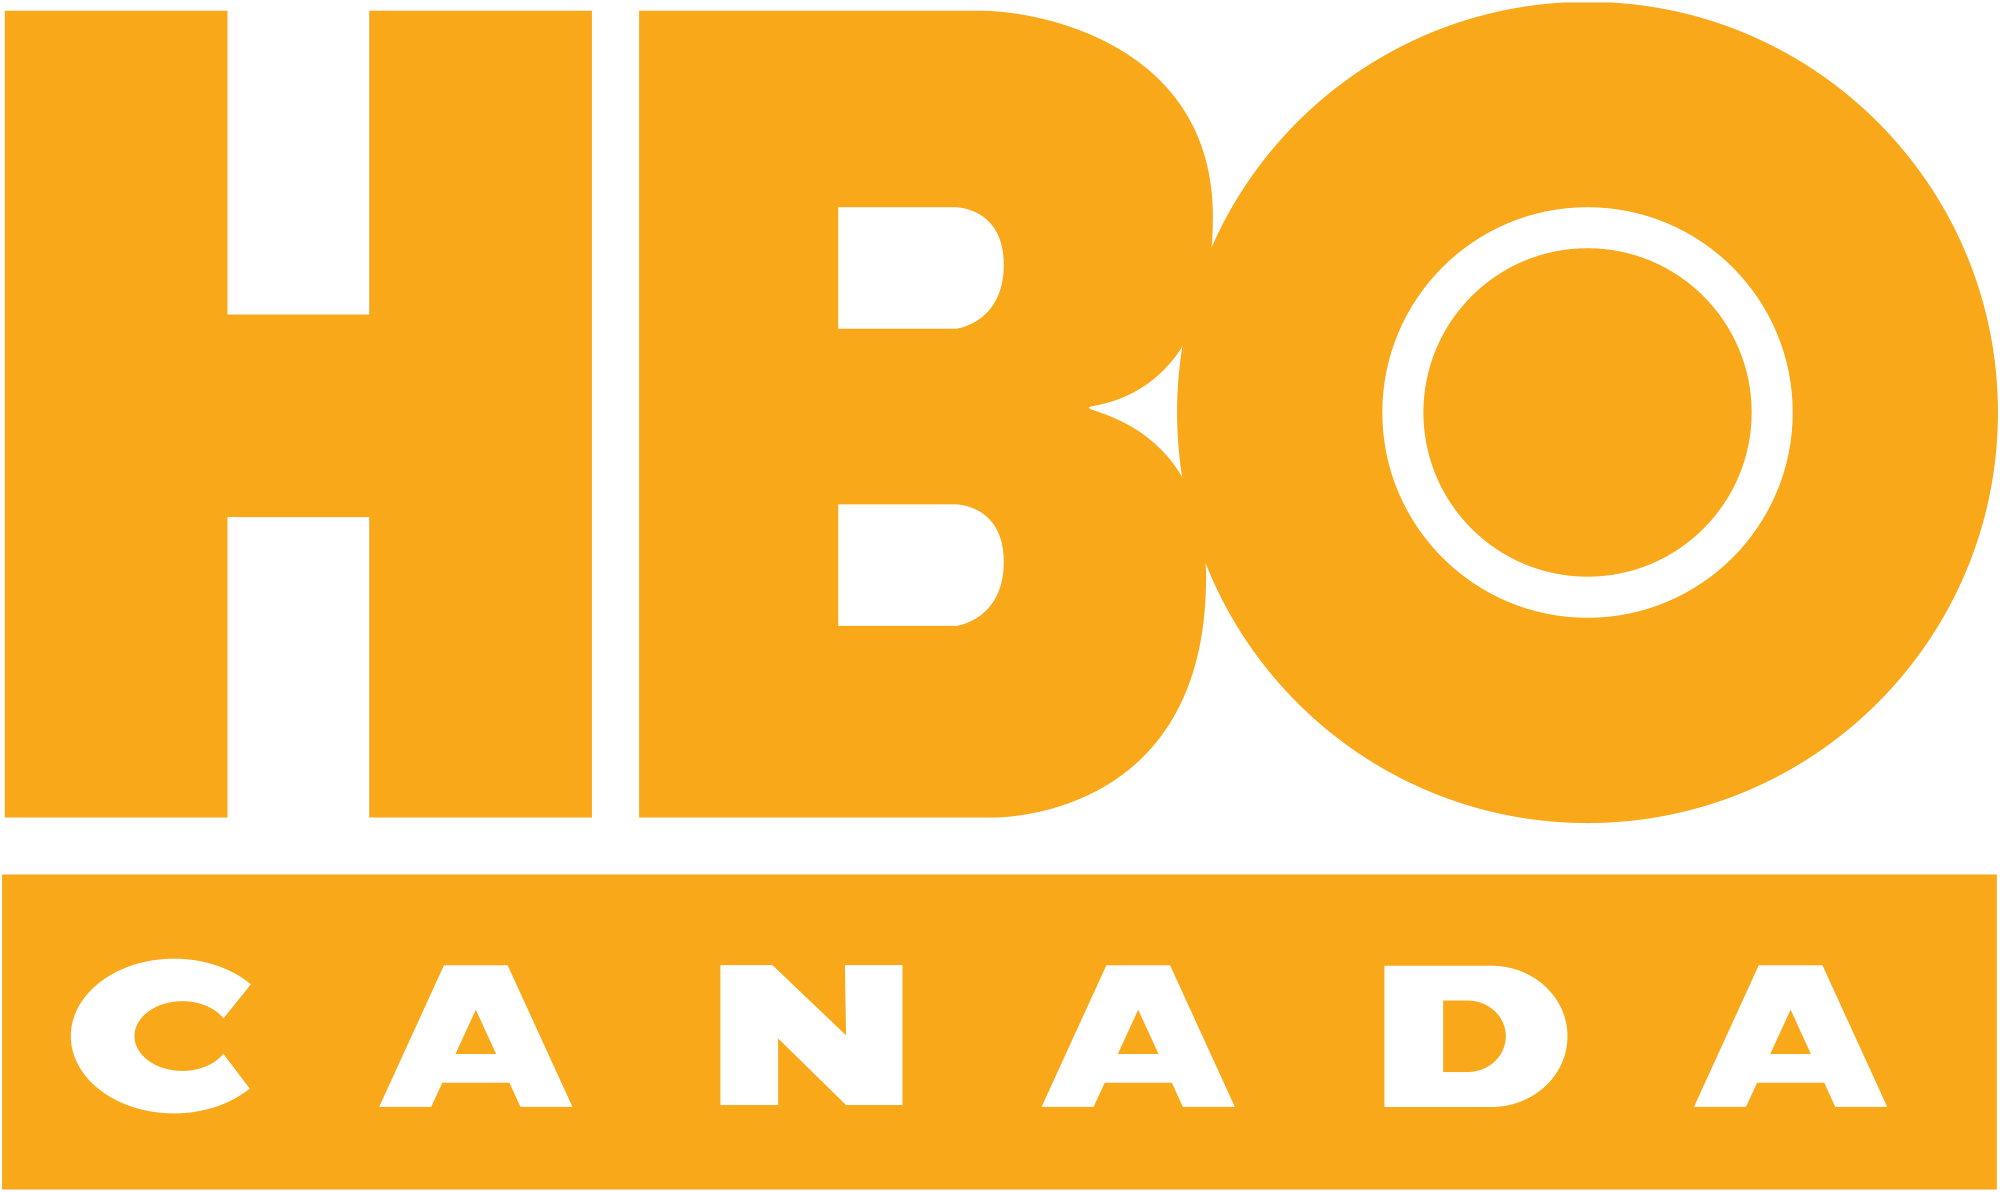 HBO Logo - File:HBO Canada logo.svg - Wikimedia Commons